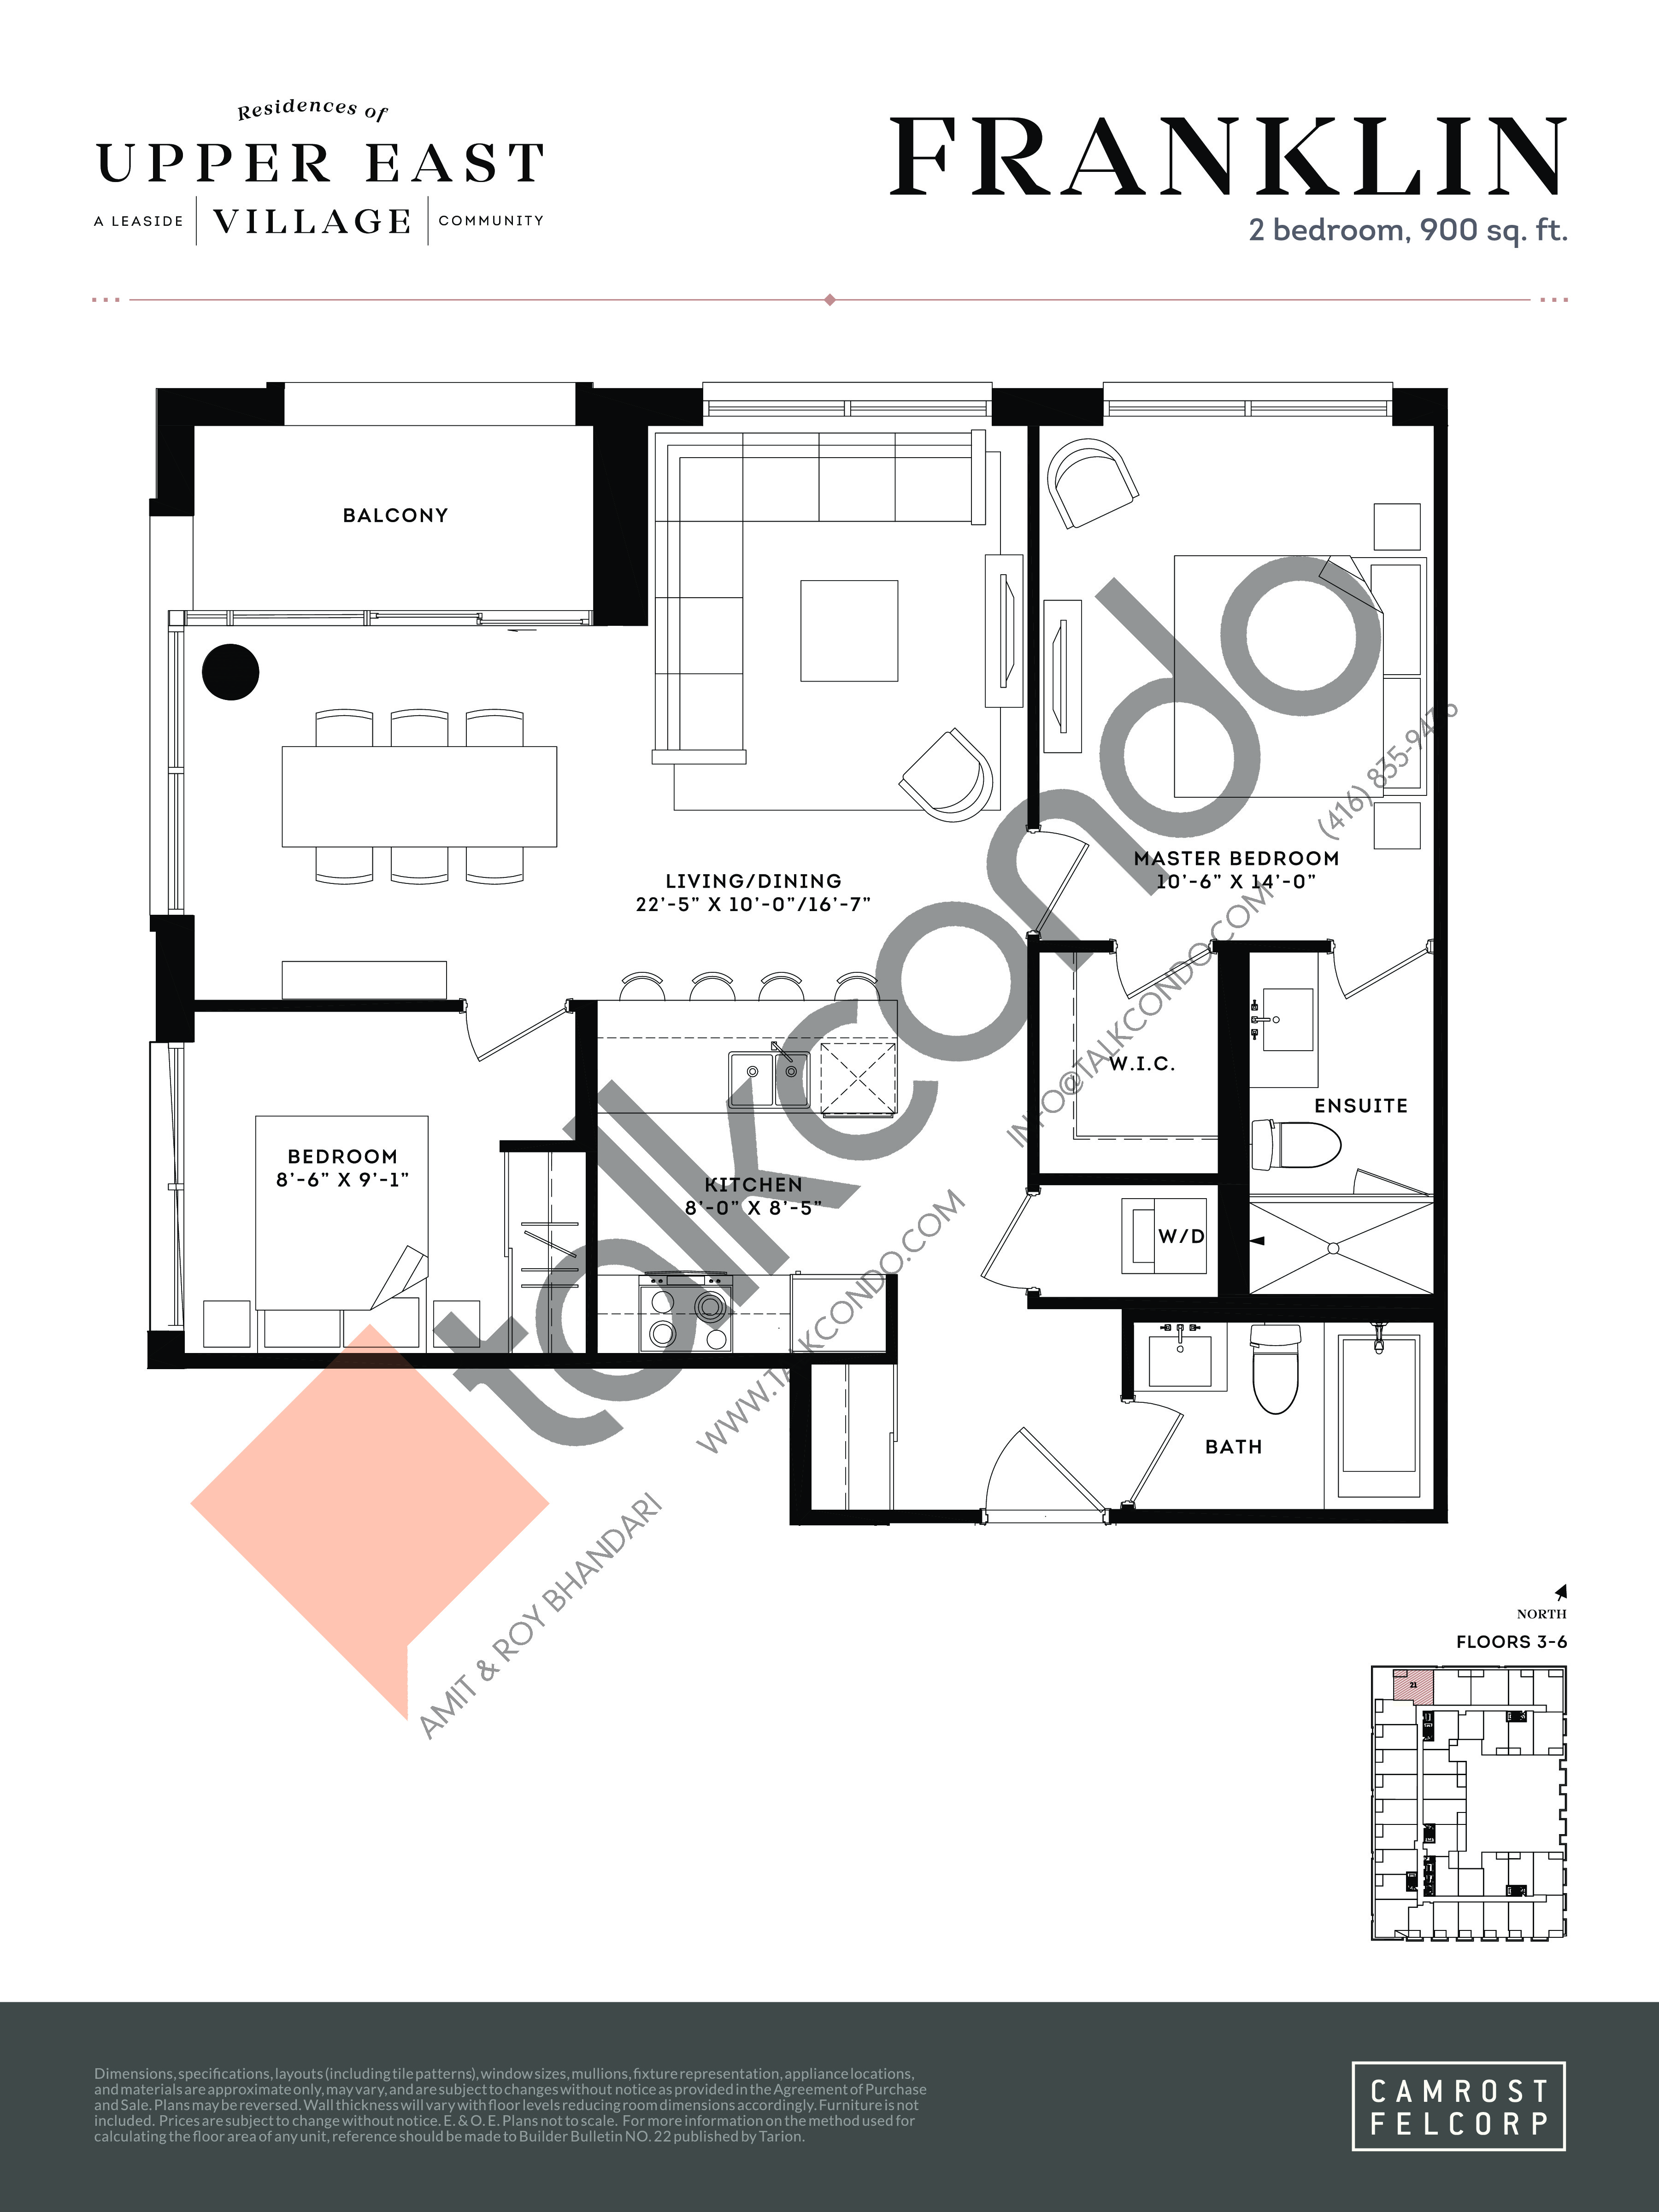 Franklin (Tower Suites) Floor Plan at Upper East Village Condos - 900 sq.ft